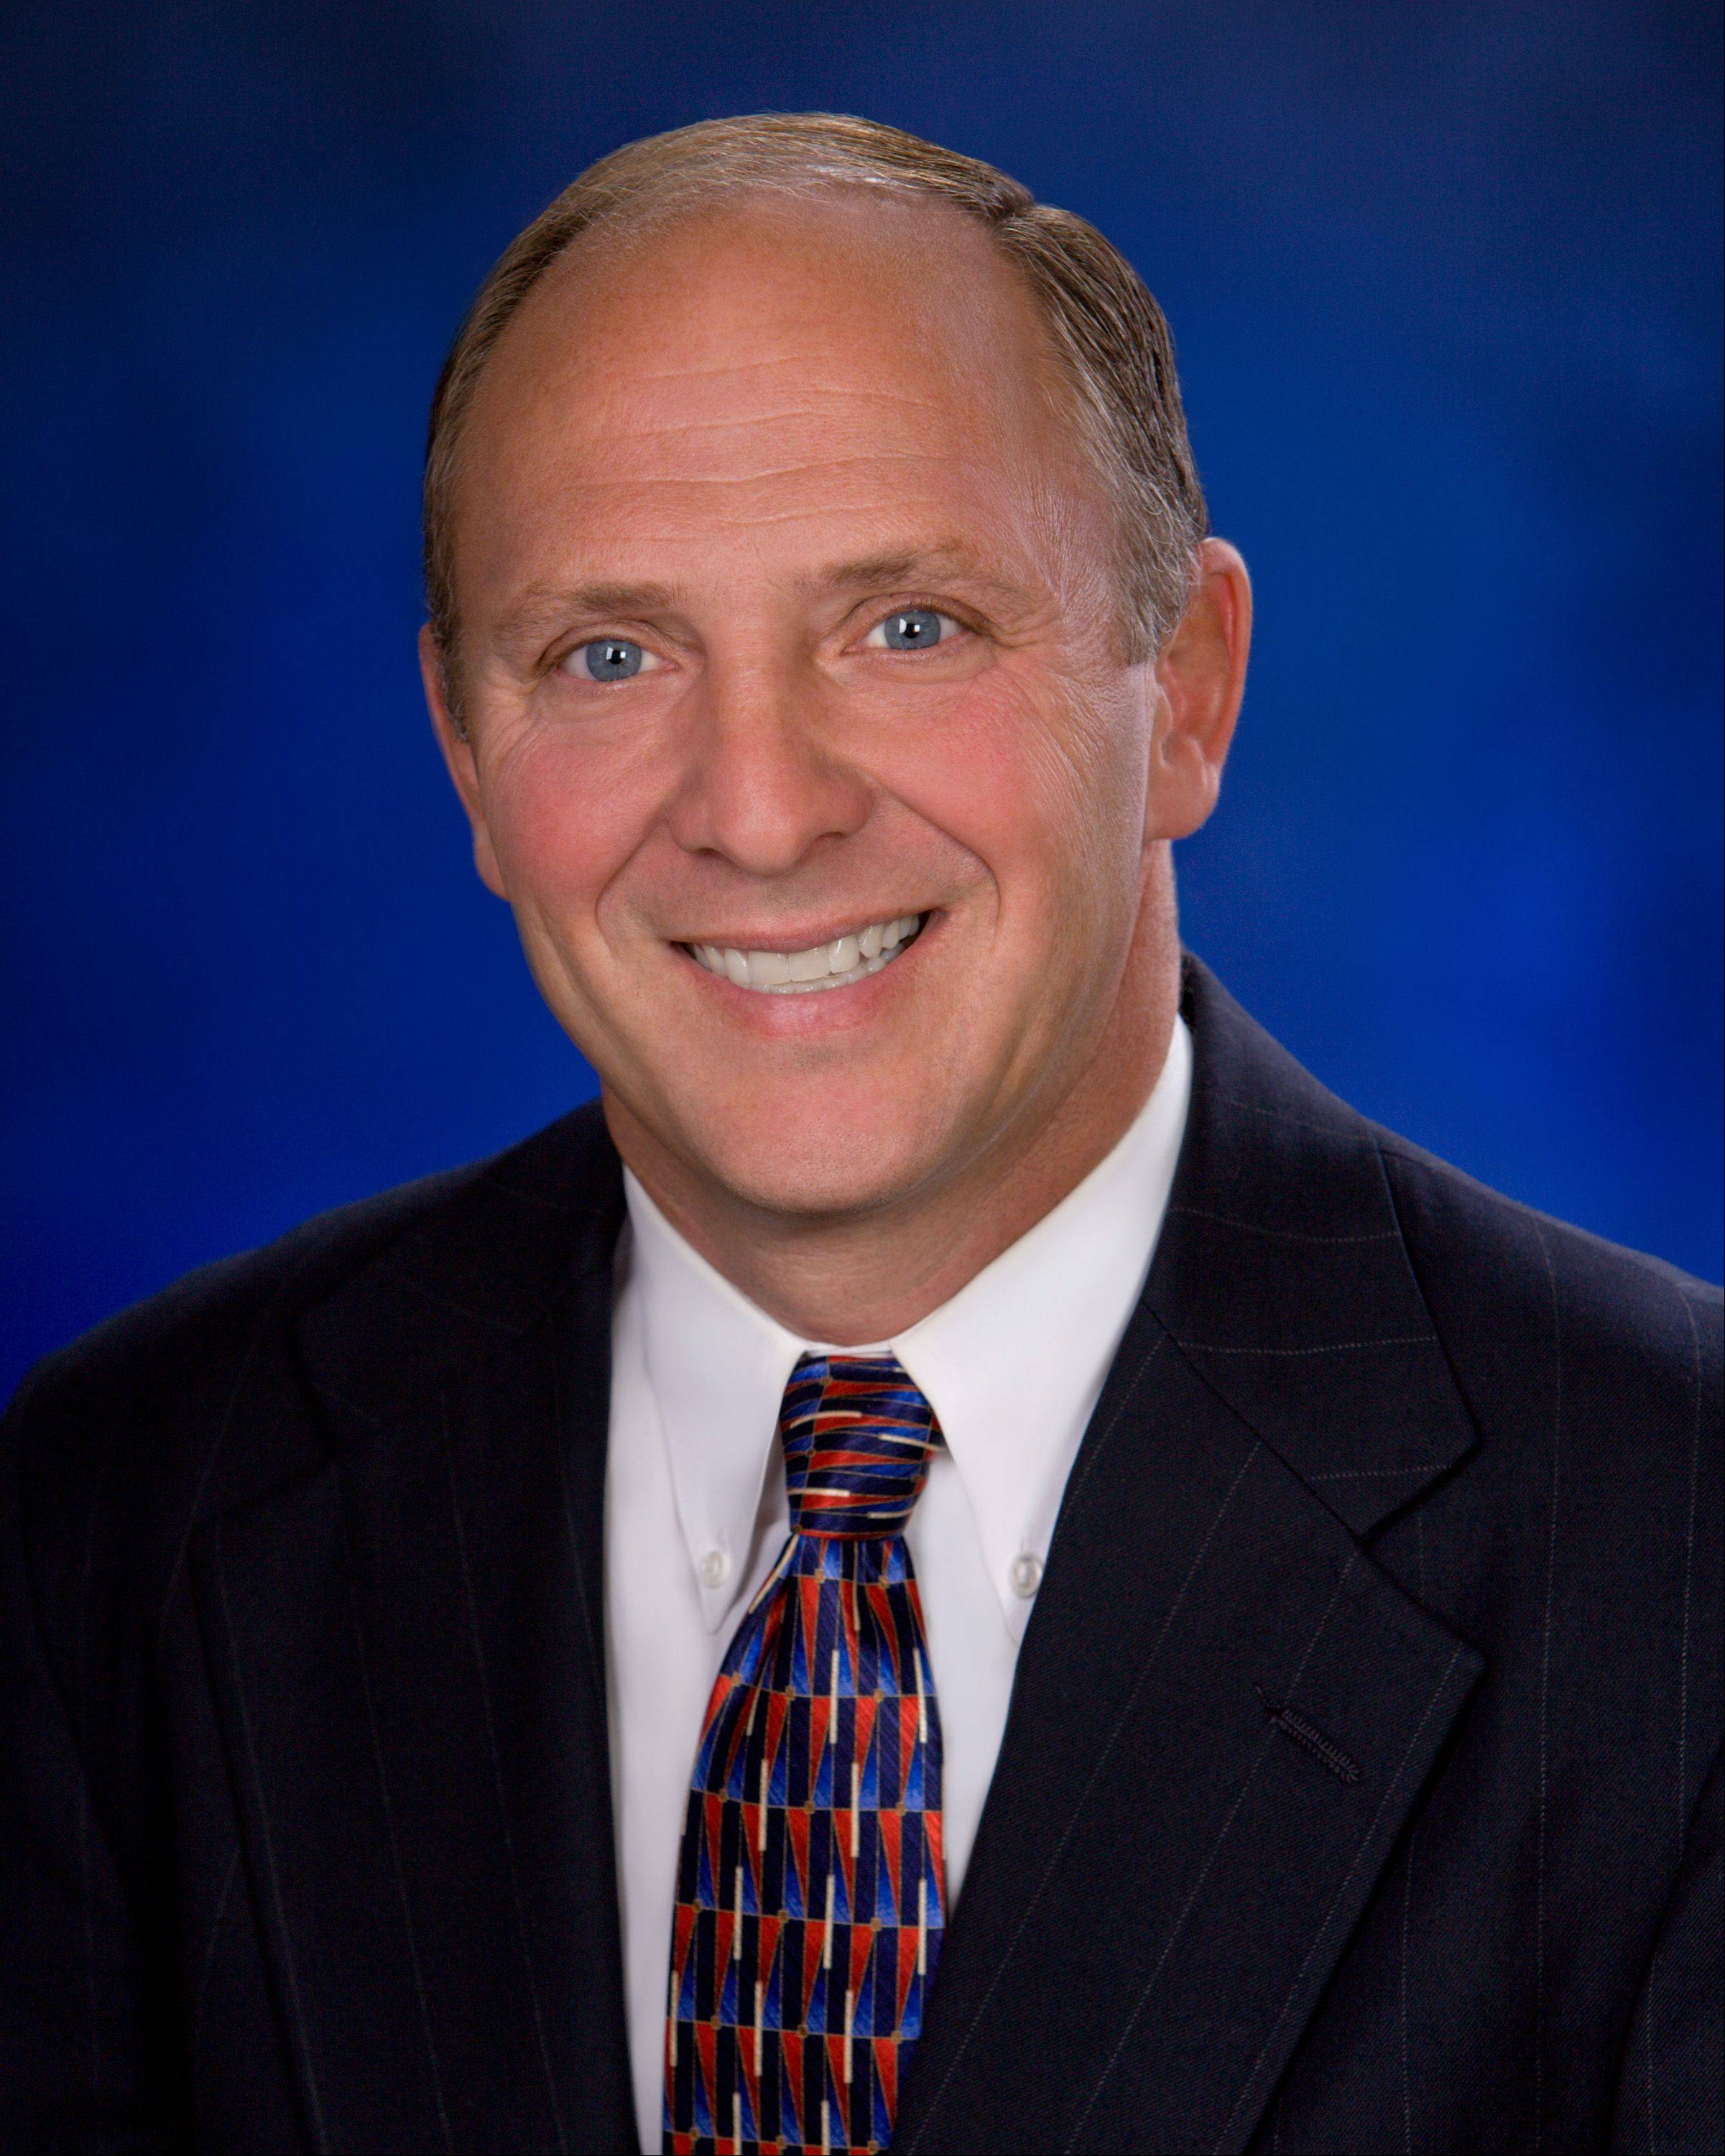 Sugar Grove Village President Sean Michels is seeking re-election in 2013.